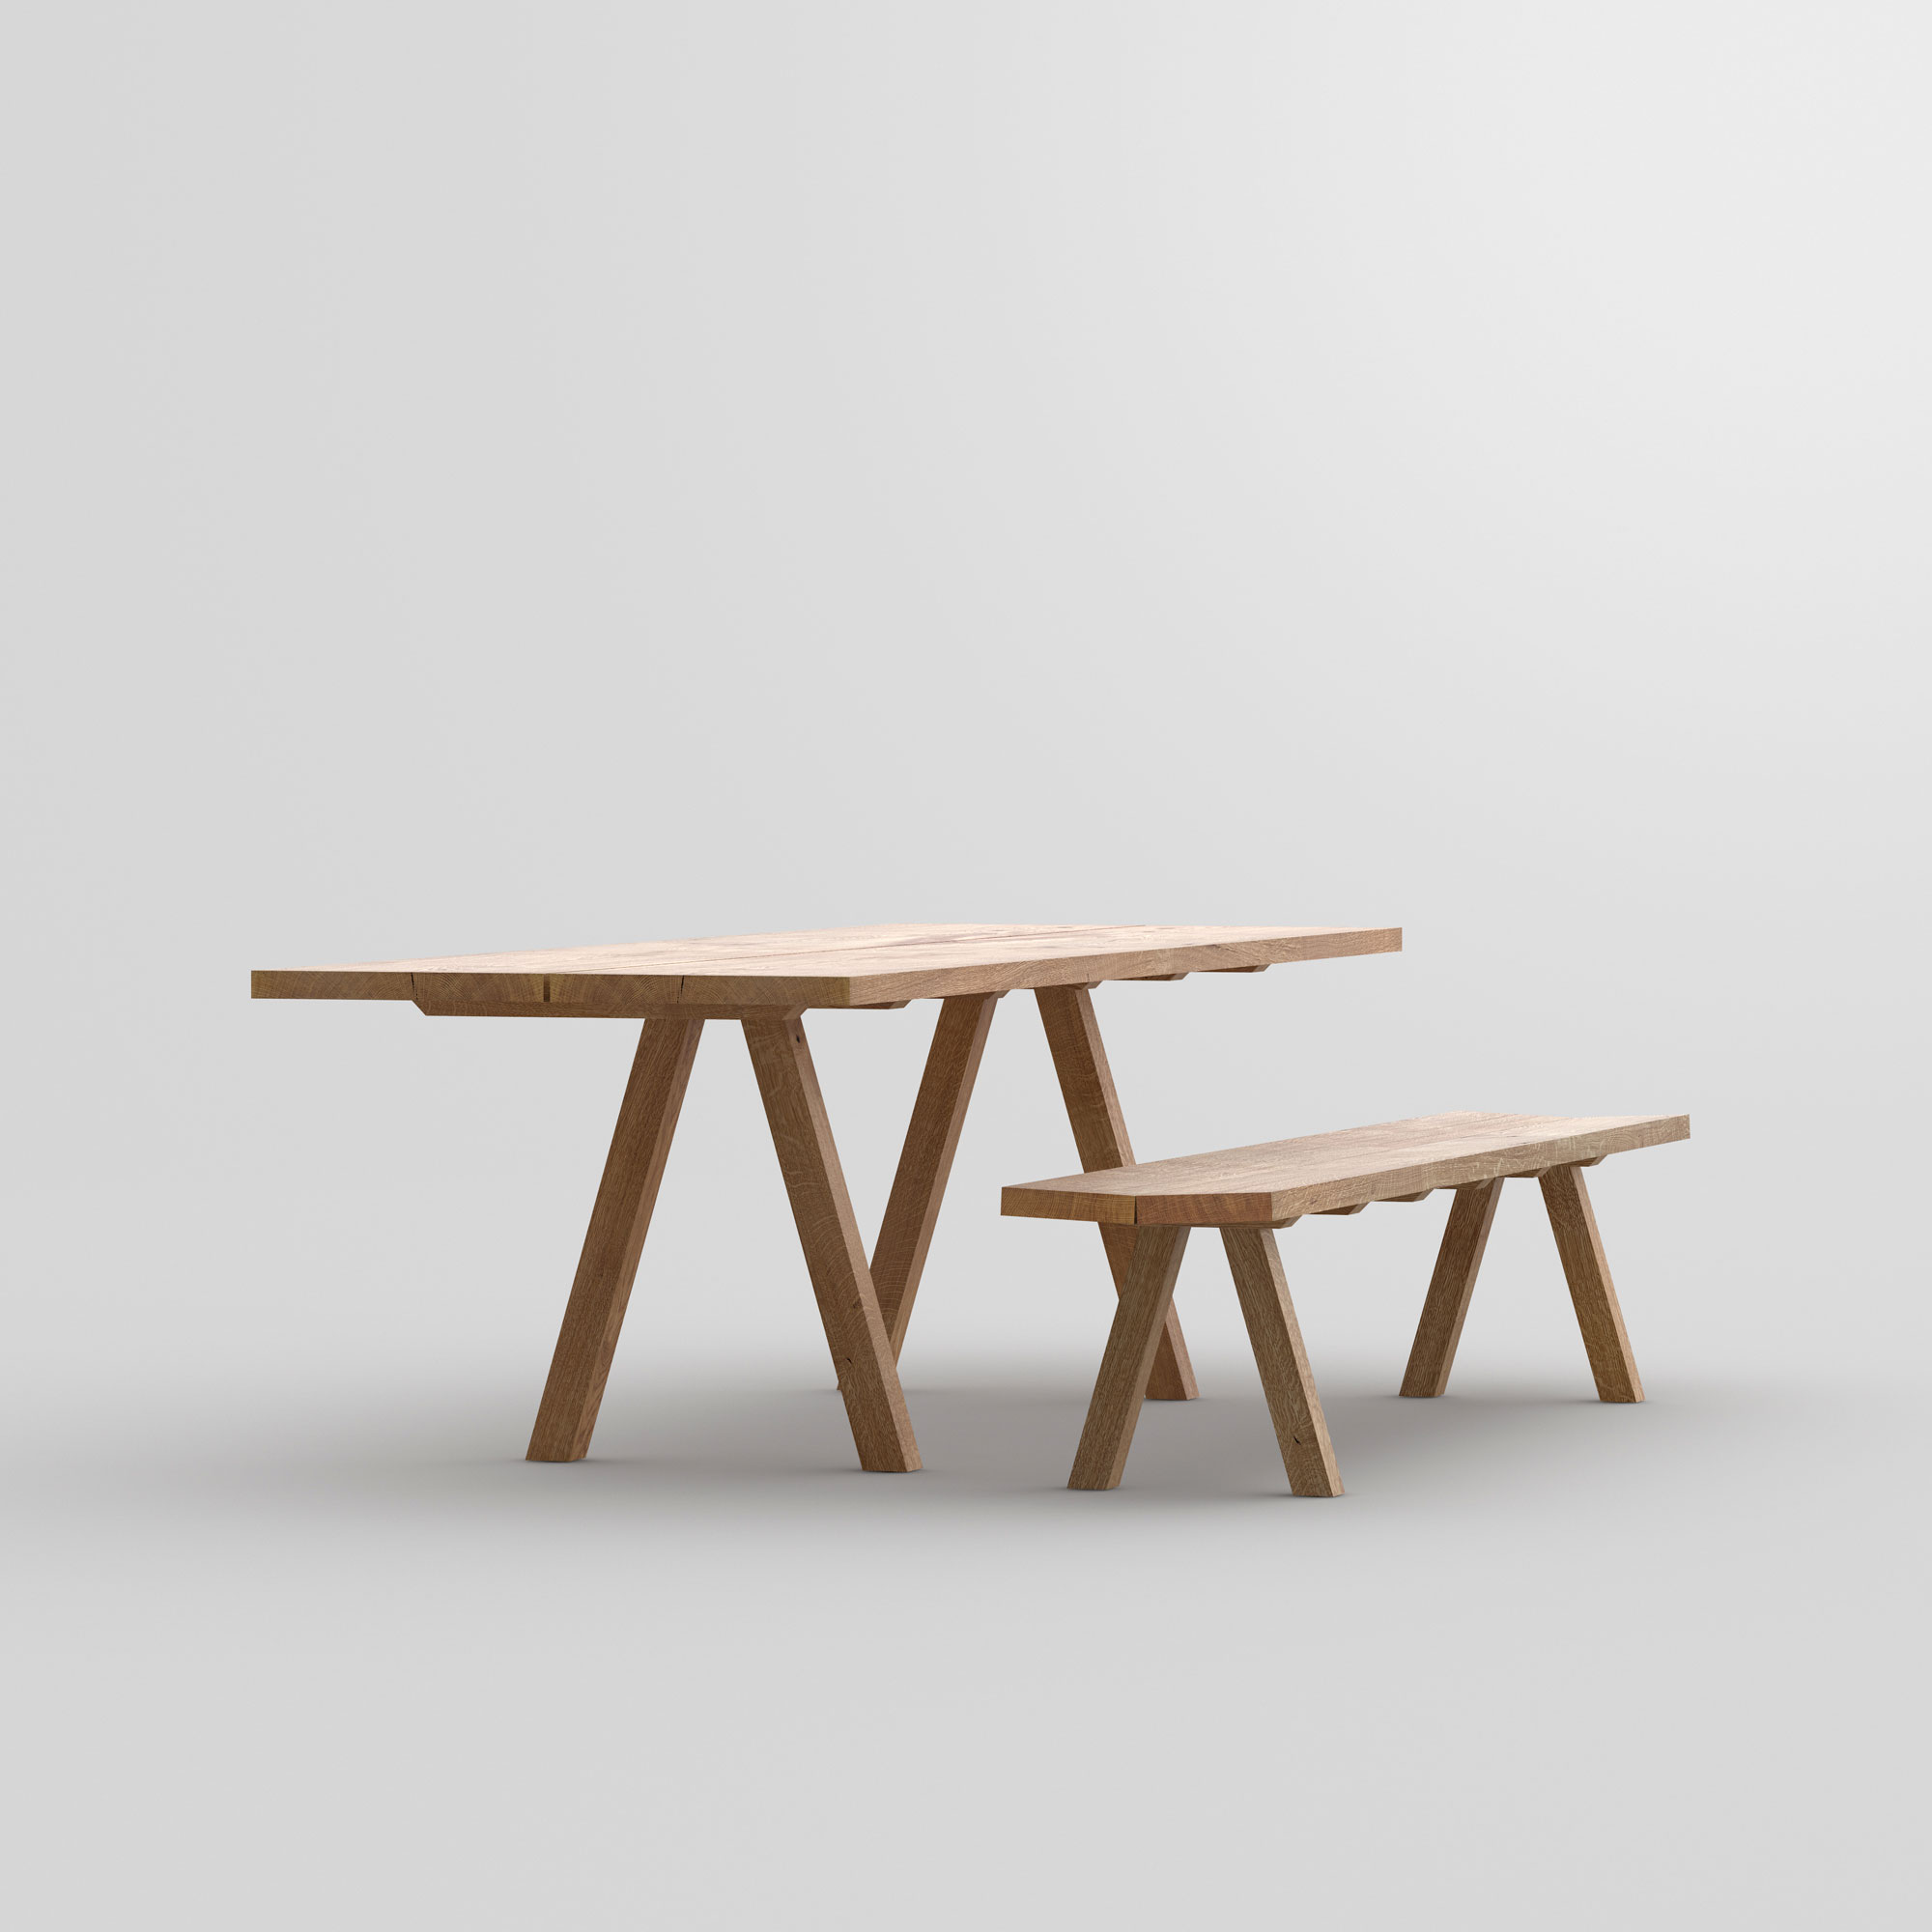 Wooden Designer Bench PAPILIO SIMPLE cam3 custom made in solid wood by vitamin design